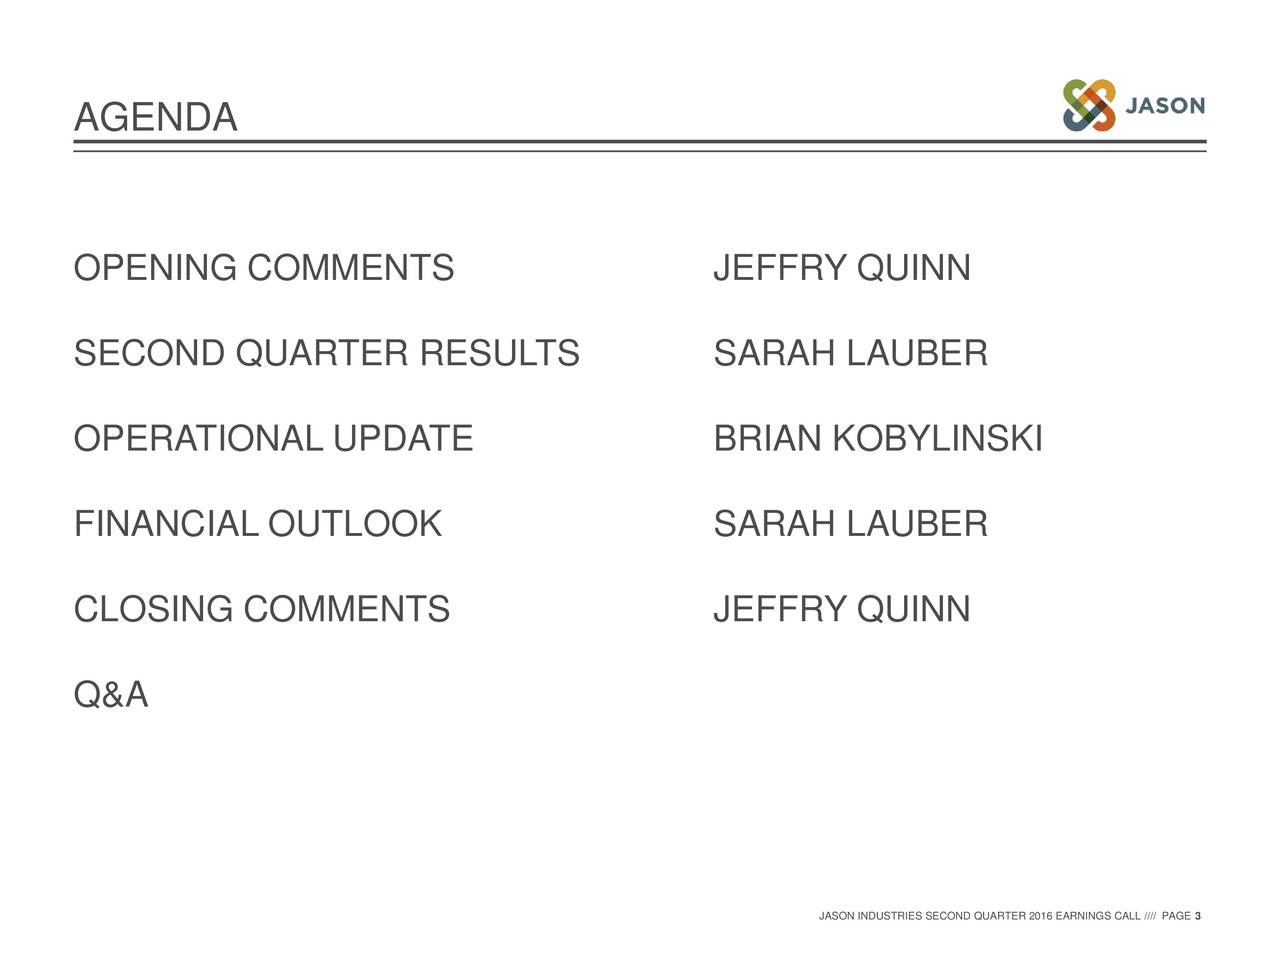 OPENING COMMENTS JEFFRY QUINN SECOND QUARTER RESULTS SARAH LAUBER OPERATIONAL UPDATE BRIAN KOBYLINSKI FINANCIAL OUTLOOK SARAH LAUBER CLOSING COMMENTS JEFFRY QUINN Q&A JASON INDUSTRIES SECOND QUARTER 2016 EARNINGS CALL //// PAGE 3